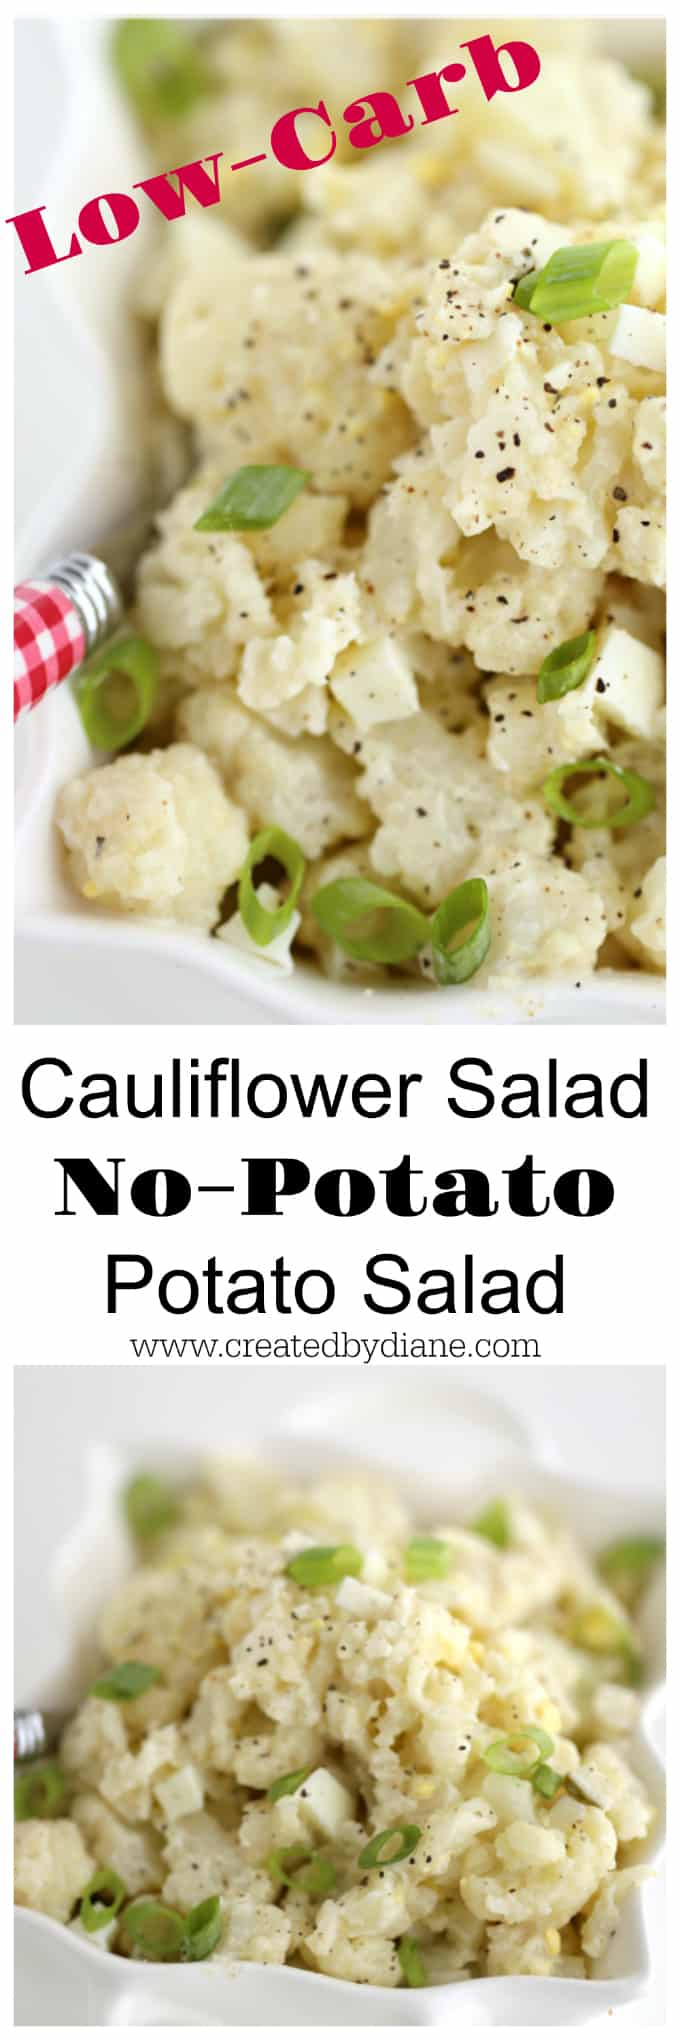 Low Carb Potato Salad Alternative, Cauliflower Salad Faux Potato Salad, Mock Potato Salad, Side Dish www.createdbydiane.com #lowcarb #cauliflower